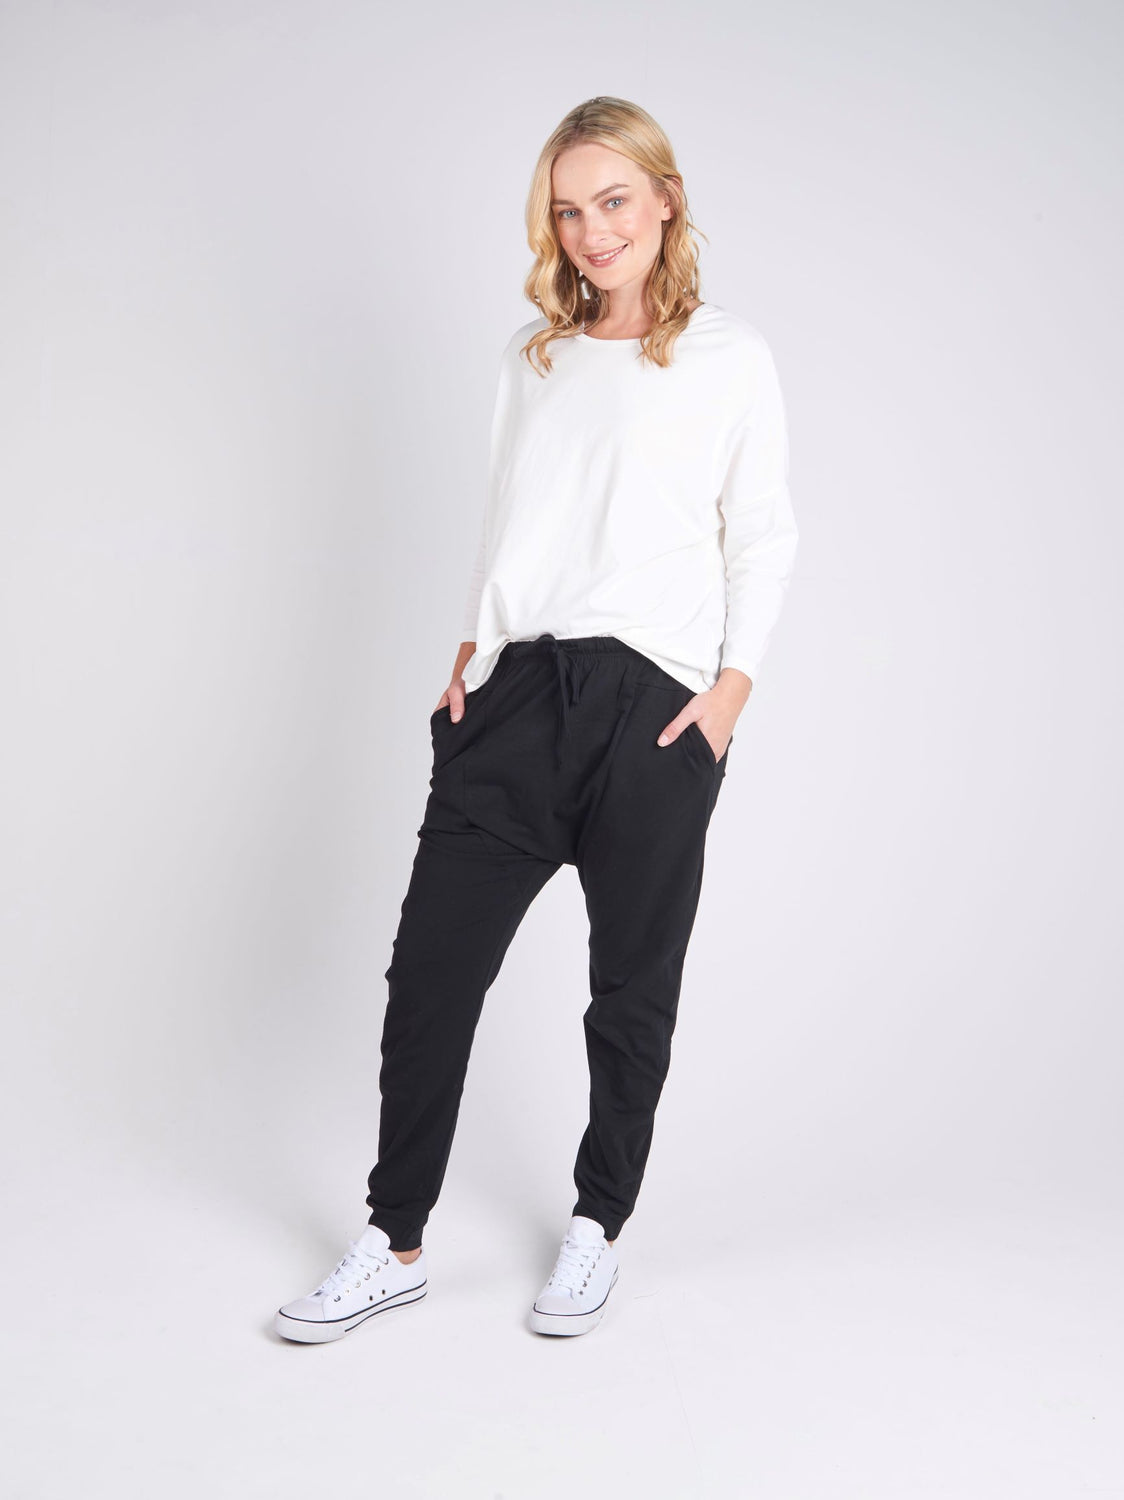 Drop Crotch Pant - Black